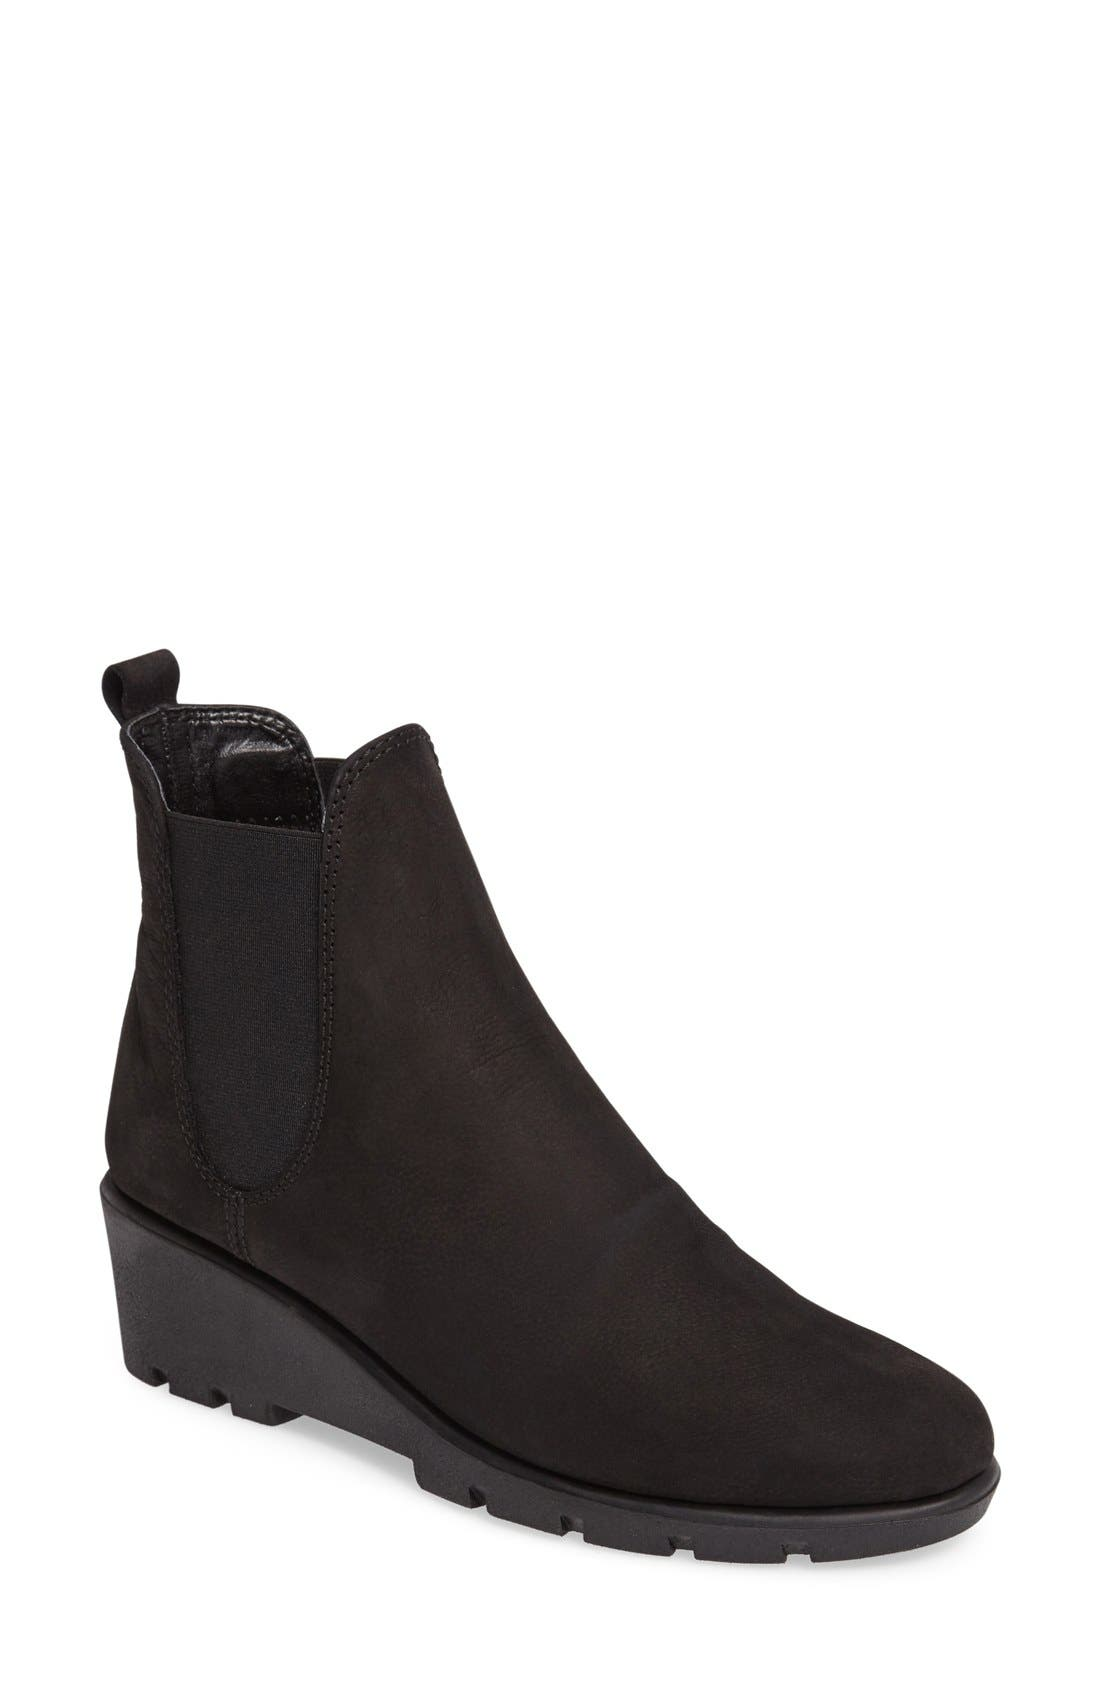 Alternate Image 1 Selected - The FLEXX Slimmer Chelsea Wedge Boot (Women)